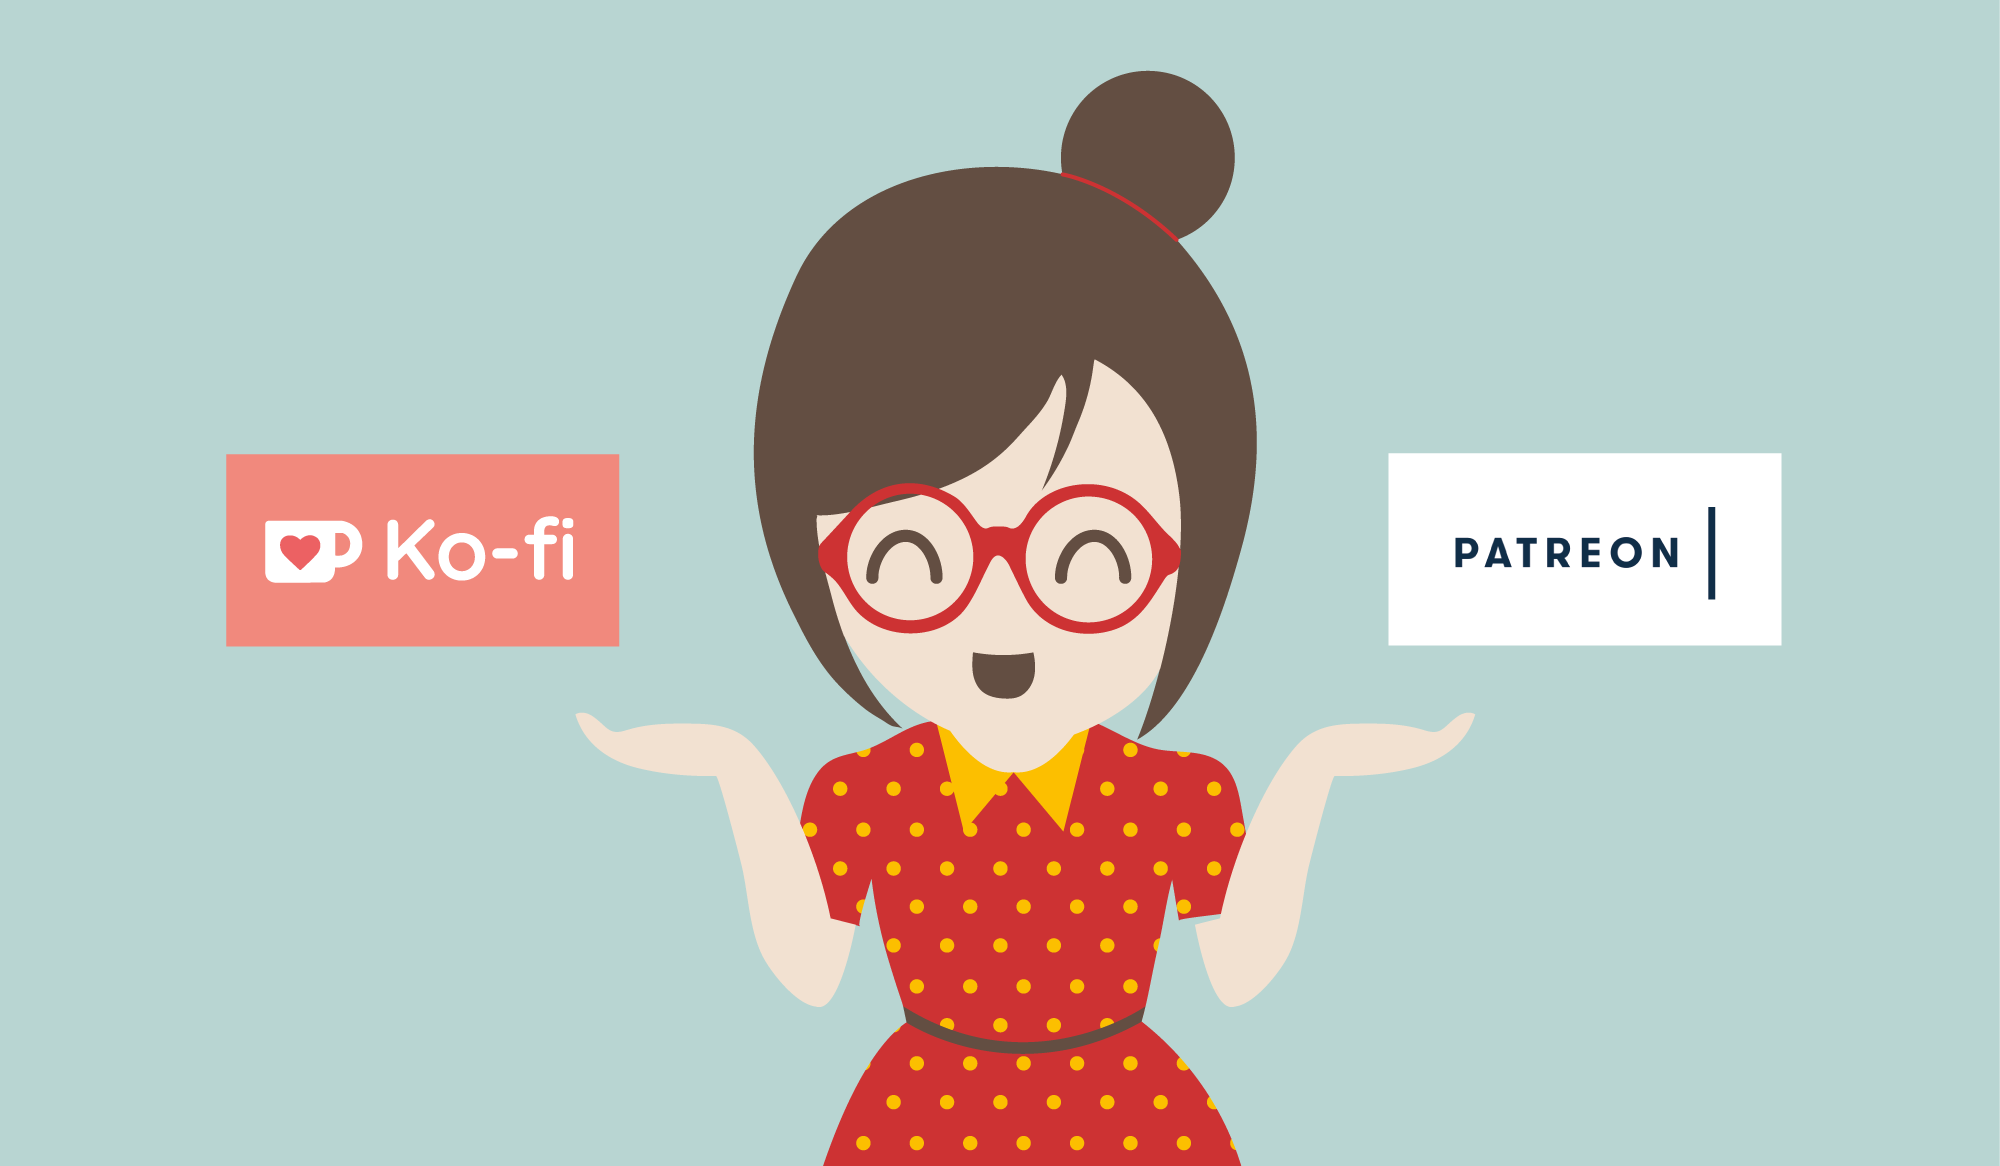 Cartoon of a girl gesturing to the logos for Ko-fi and Patreon, which many fan artists and freehand artists use.